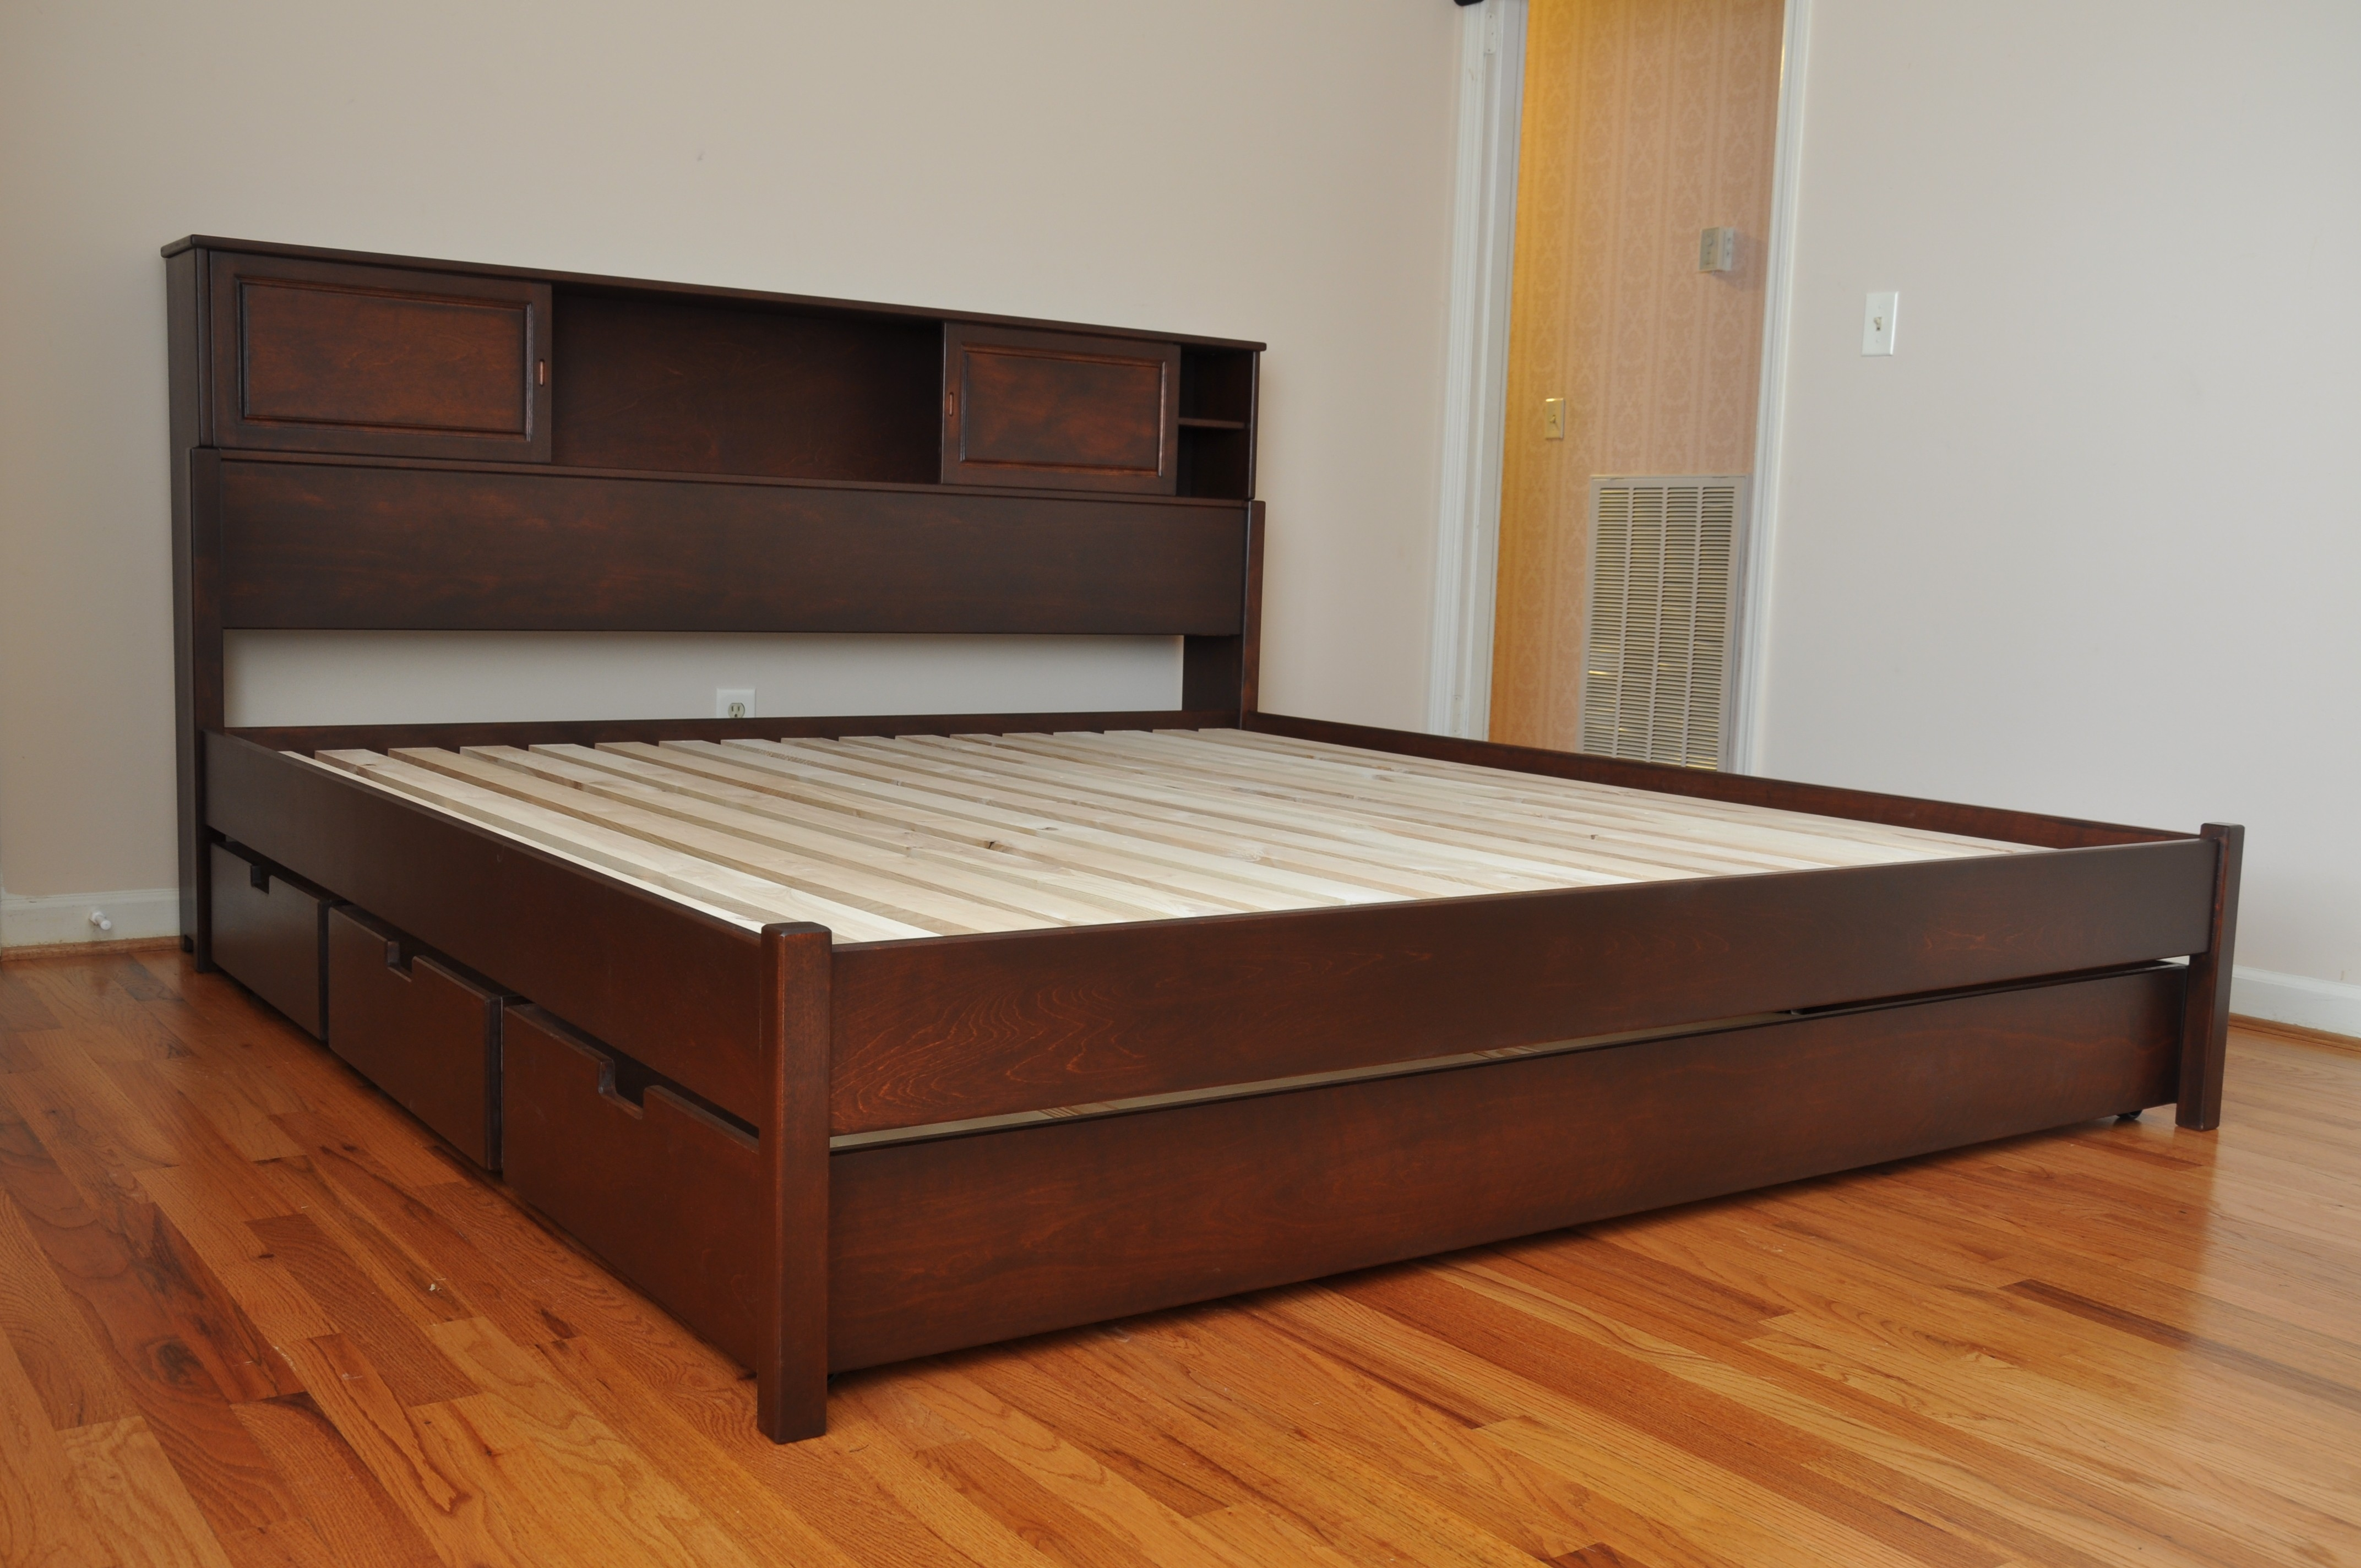 Wooden Queen Bed Frame With Drawers4288 X 2848